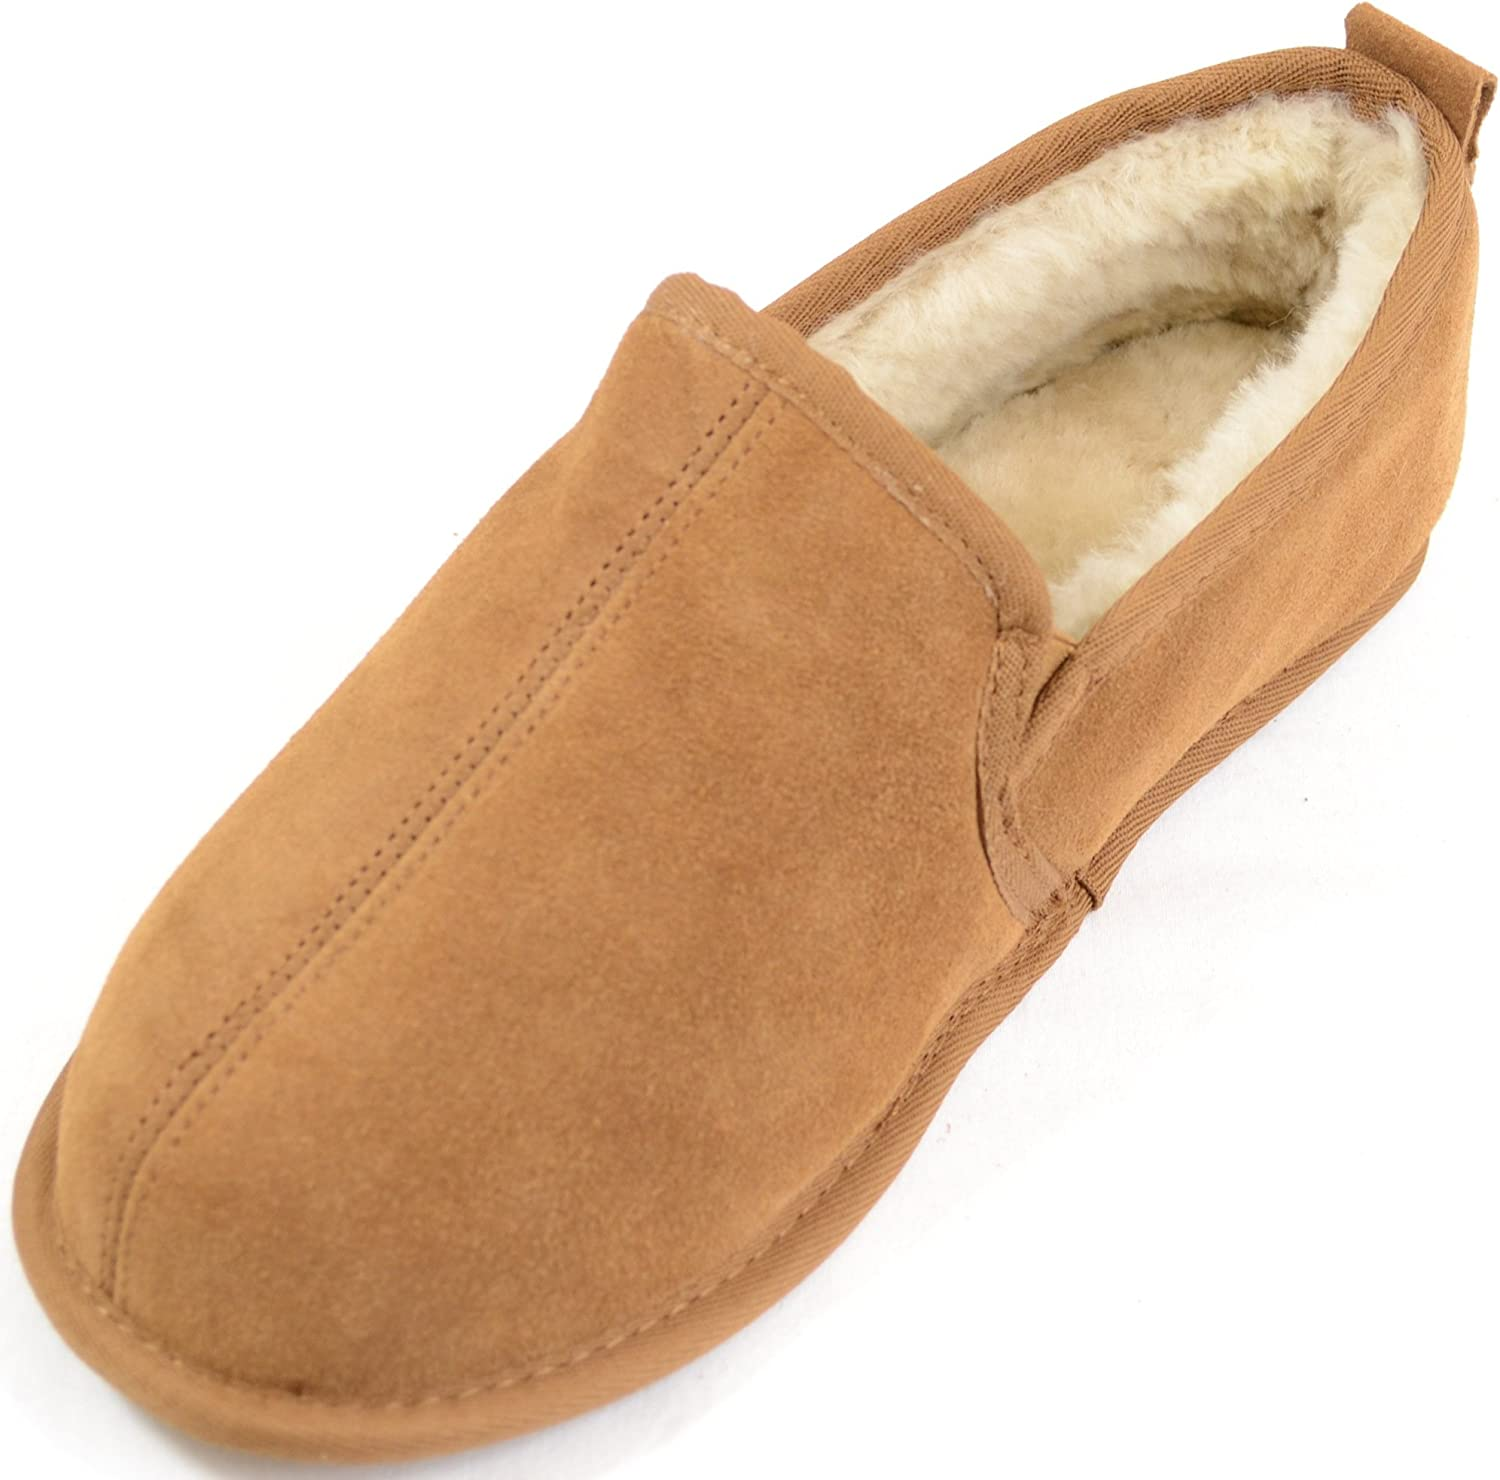 Sheepskin Slippers with Leather Soles size UK7